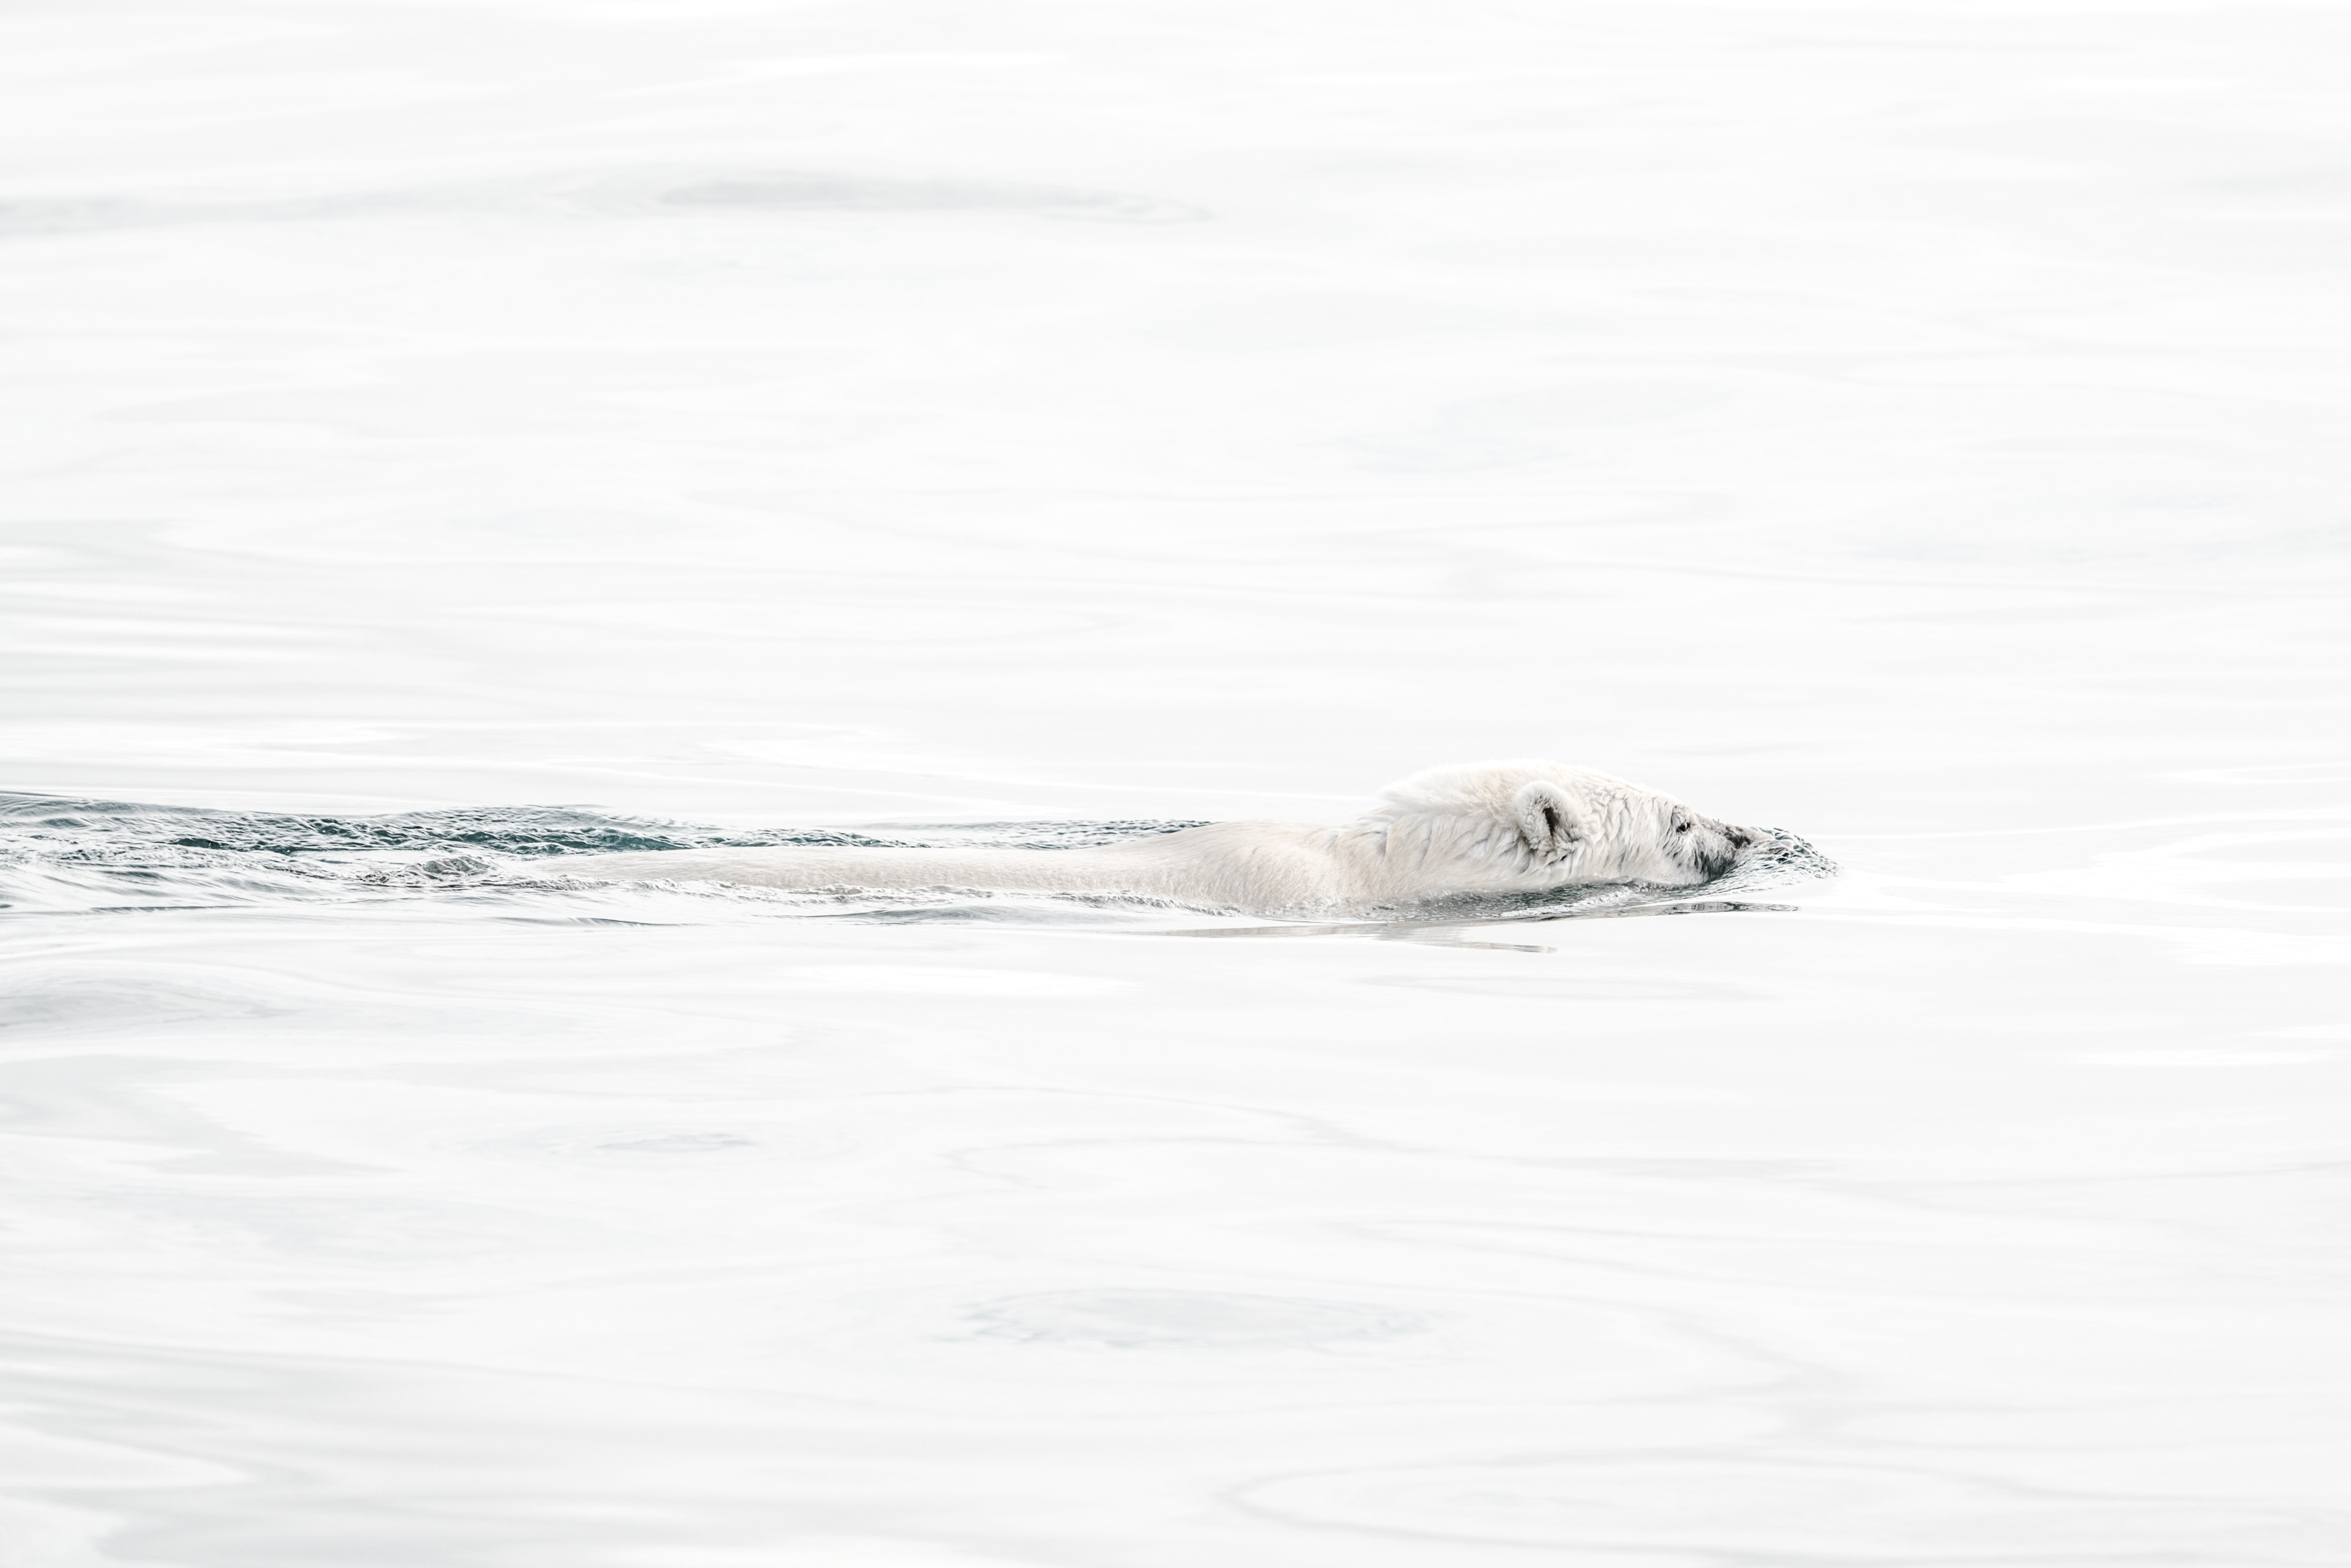 polar bear swimming on body of water